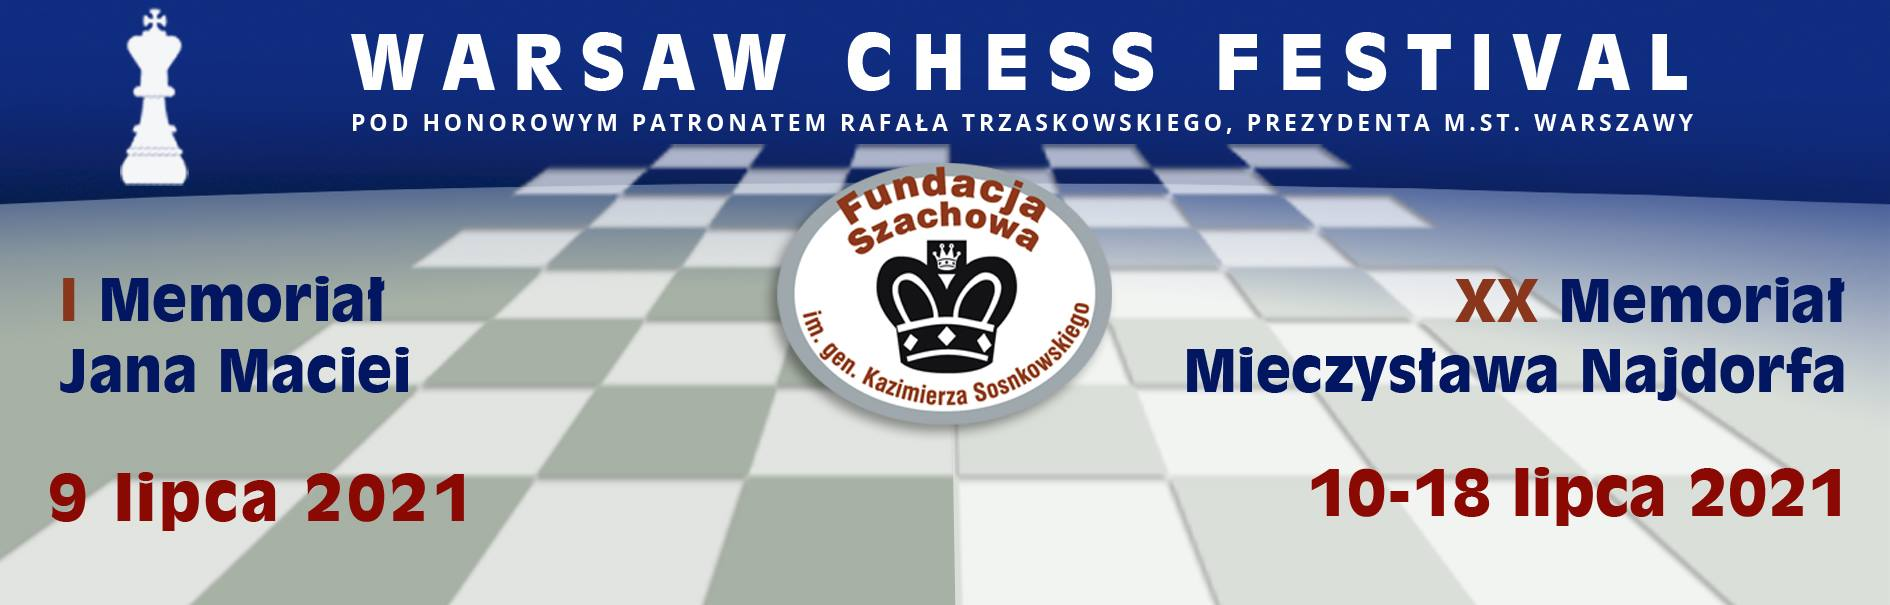 WARSAW CHESS FESTIVAL